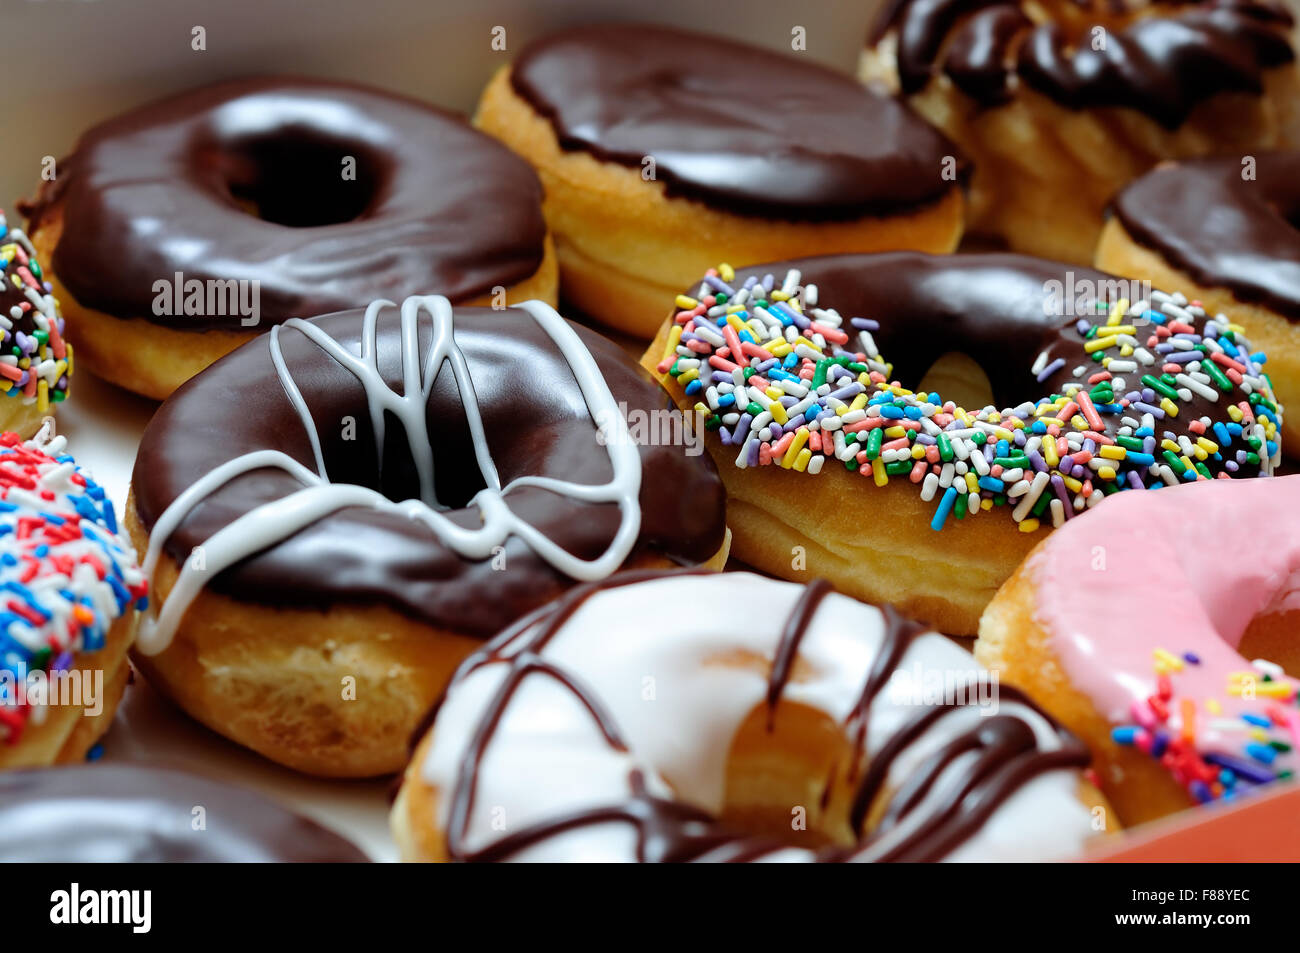 Picture of assorted donuts in a box with chocolate frosted, pink glazed and sprinkles donuts. - Stock Image